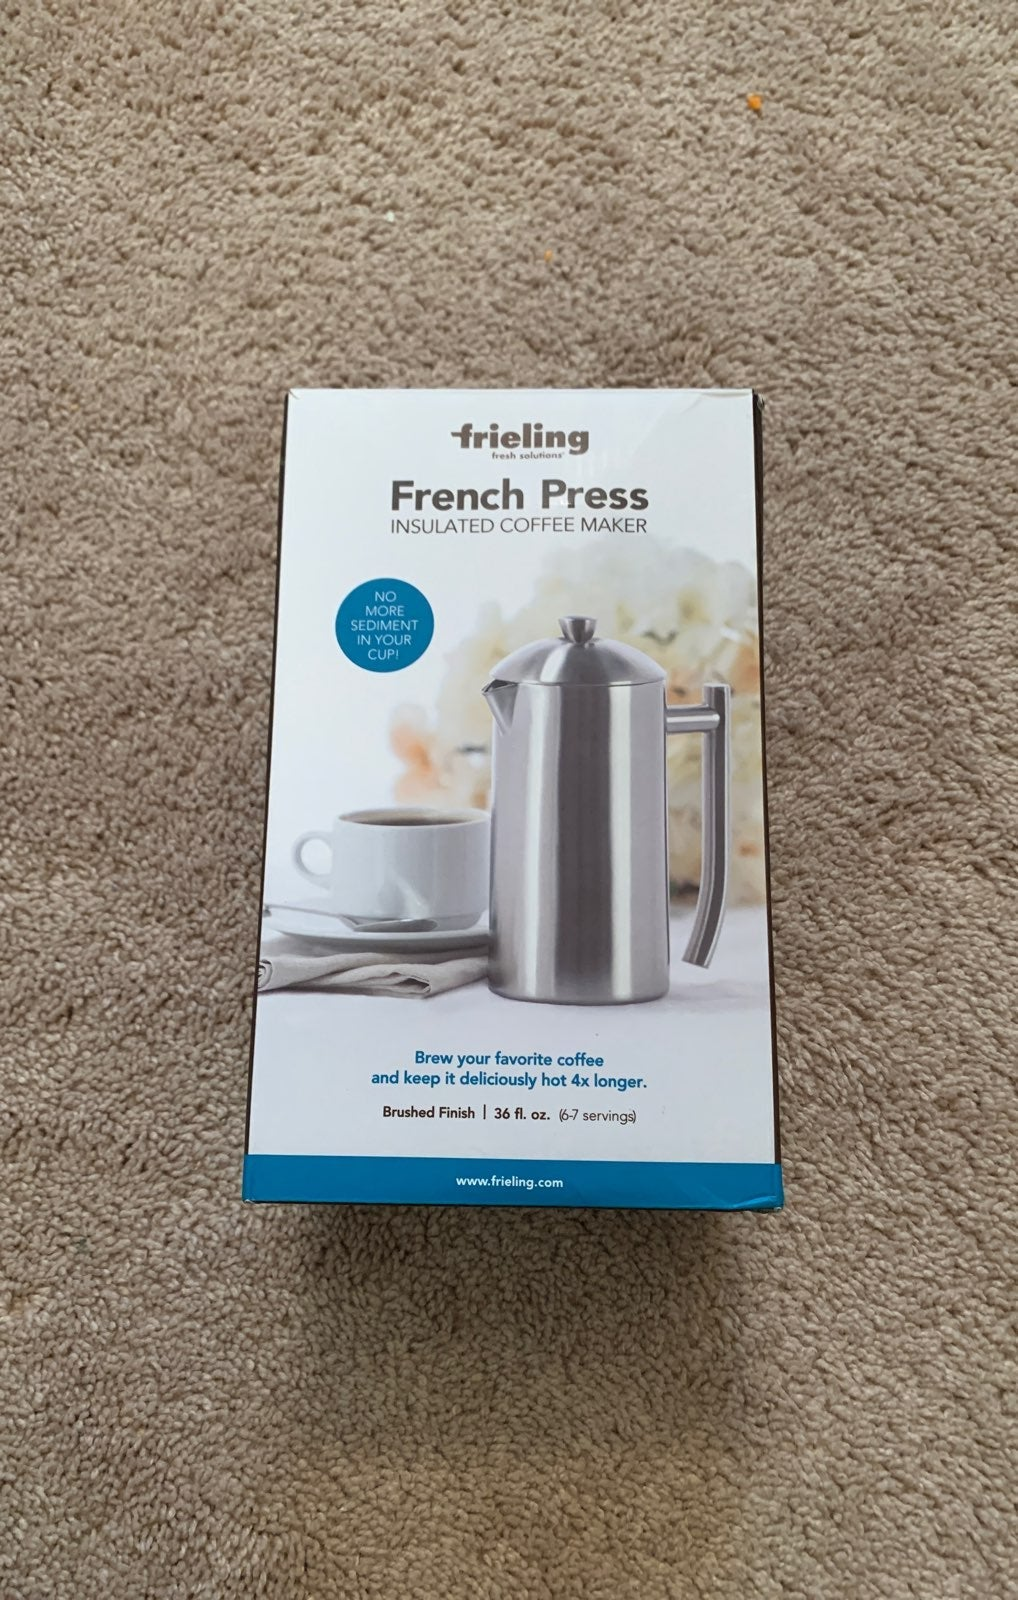 French Press Insulated Coffee maker